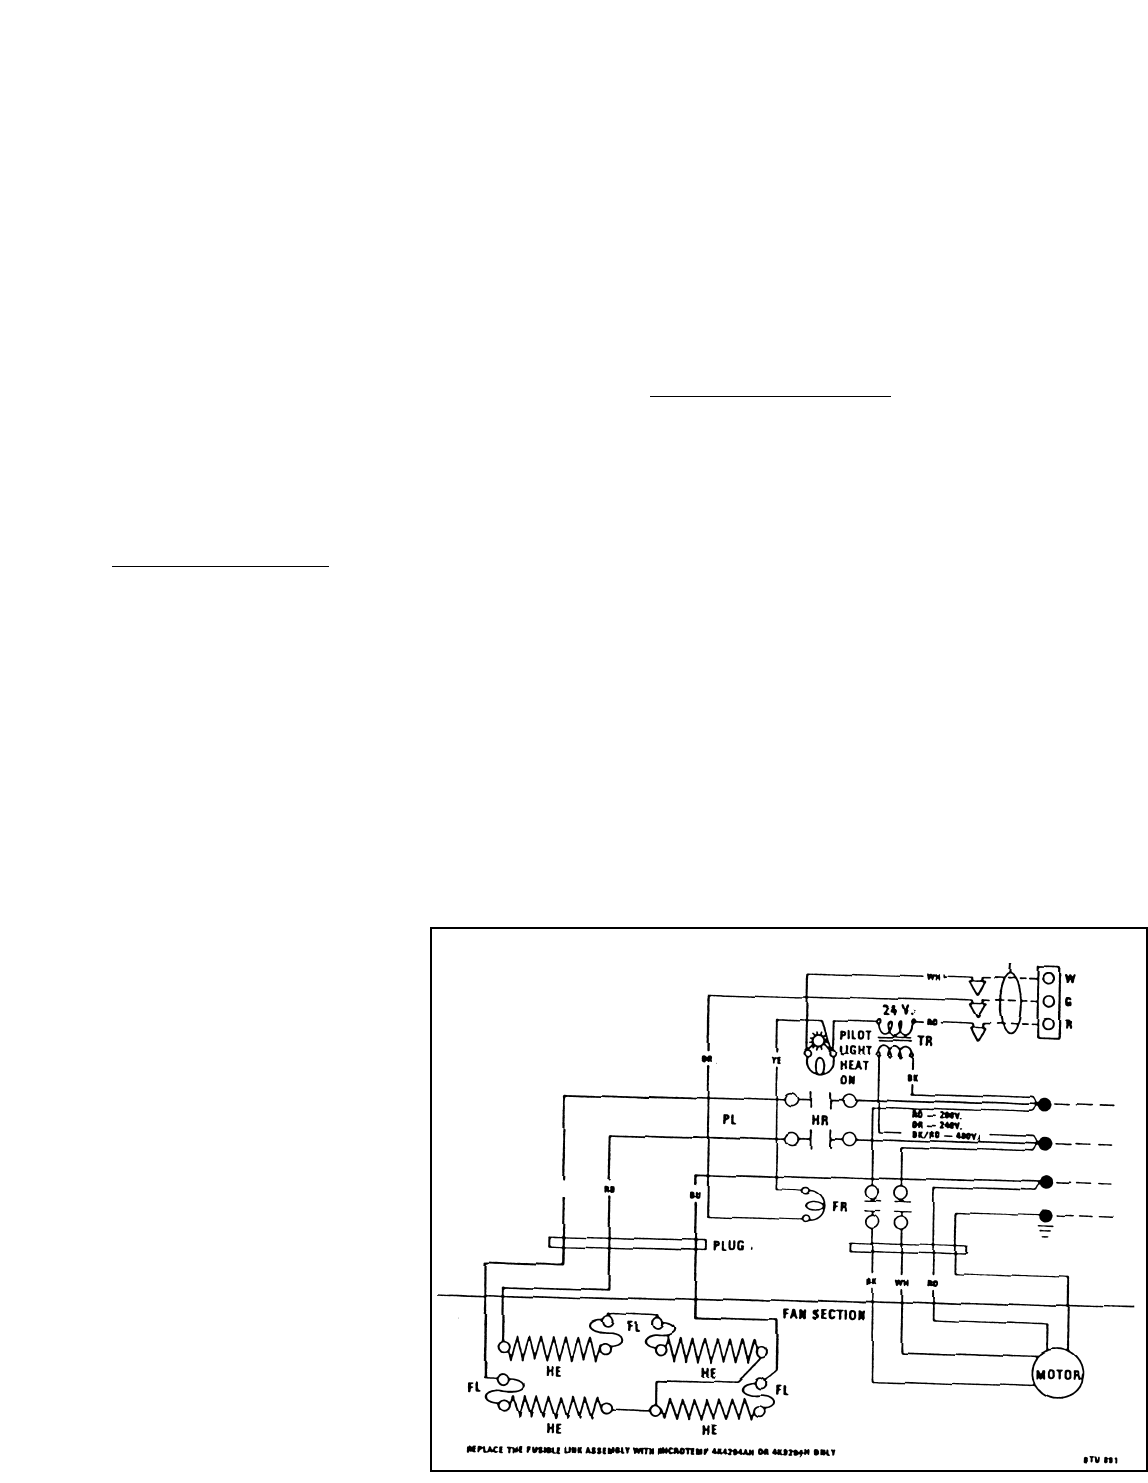 Marley Engineered Products Thermostat Wiring - Wiring Diagram ShwWiring Diagram Shw